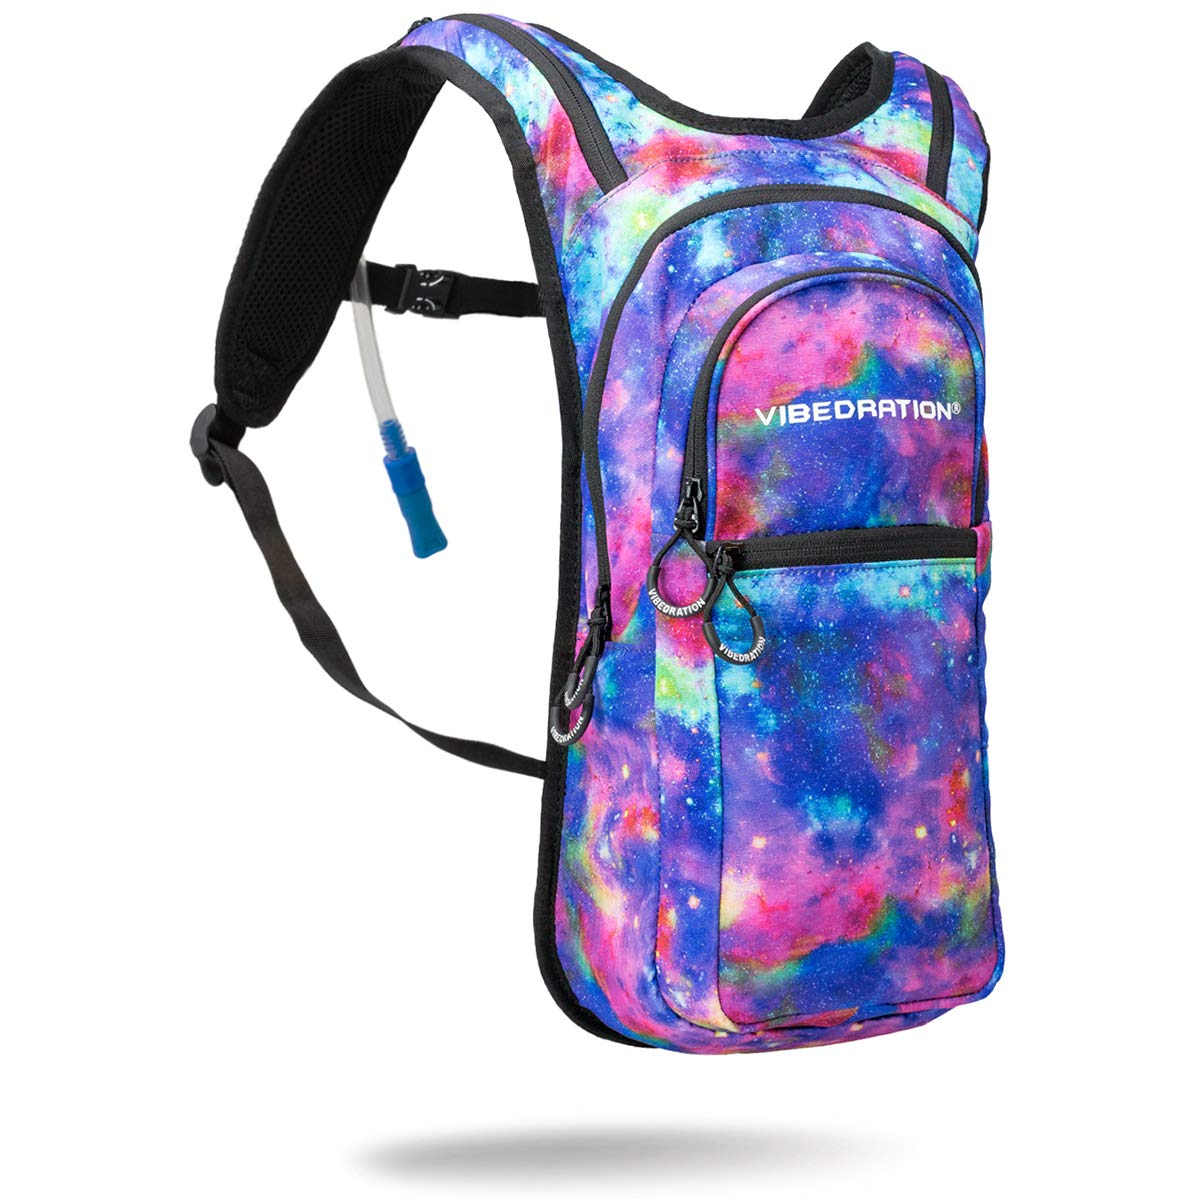 Vibedration VIP 2 Liter Festival Hydration Pack | Festival Rave Hydration, Hiking Camping Backpack (Metallic Space)